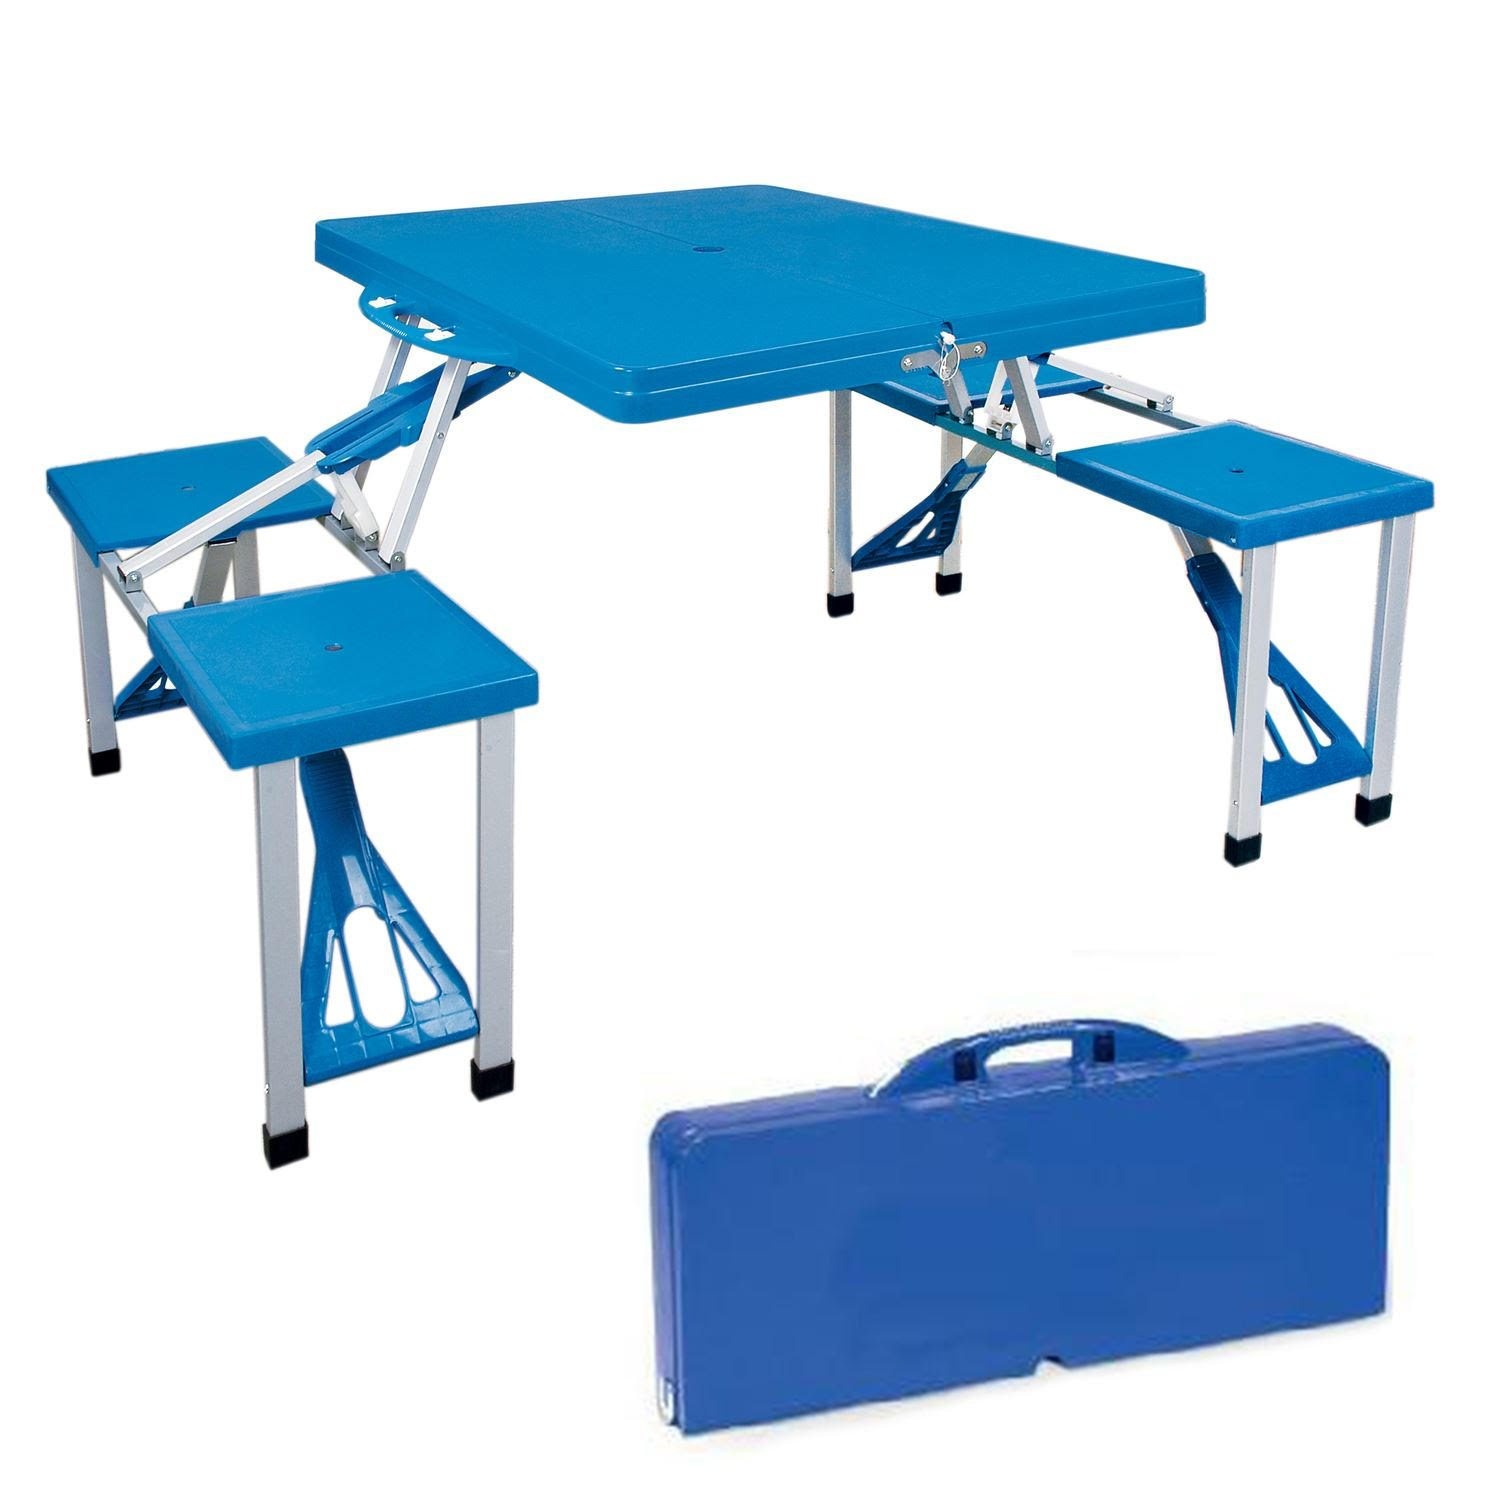 Hillington Portable Picnic Table Briefcase Set with 2 Benches for Seating 4 - Ideal for Garden Party, Camping, Hiking, Outdoor Dining, BBQ